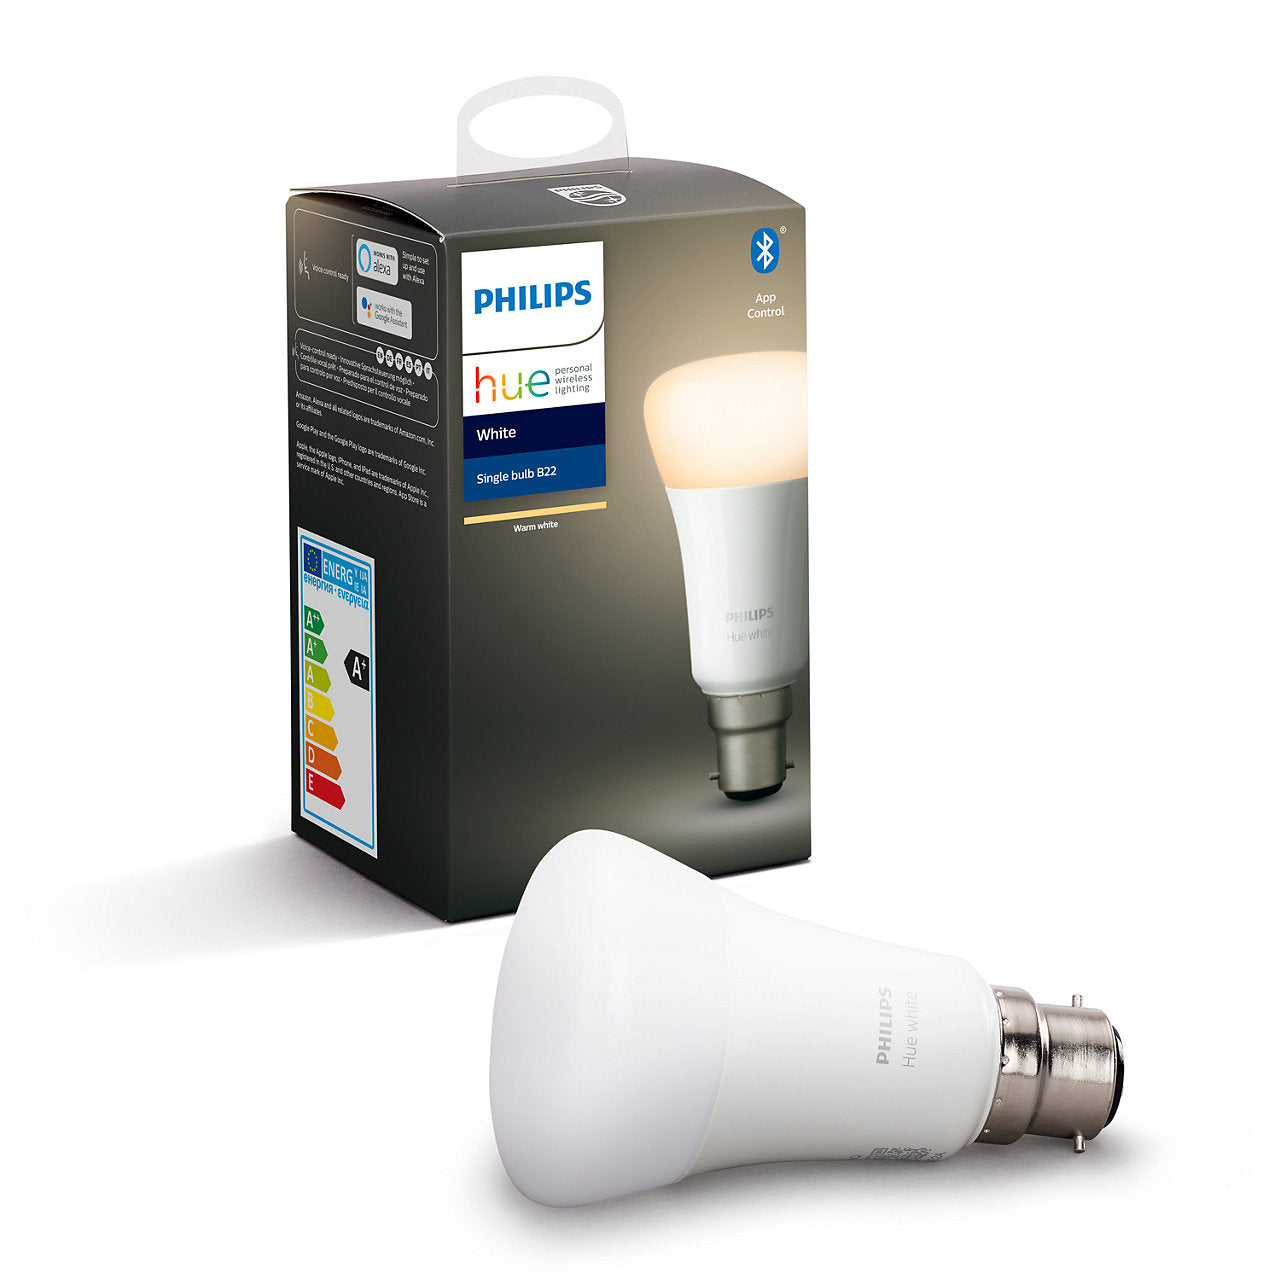 Philips Hue White Bluetooth B22